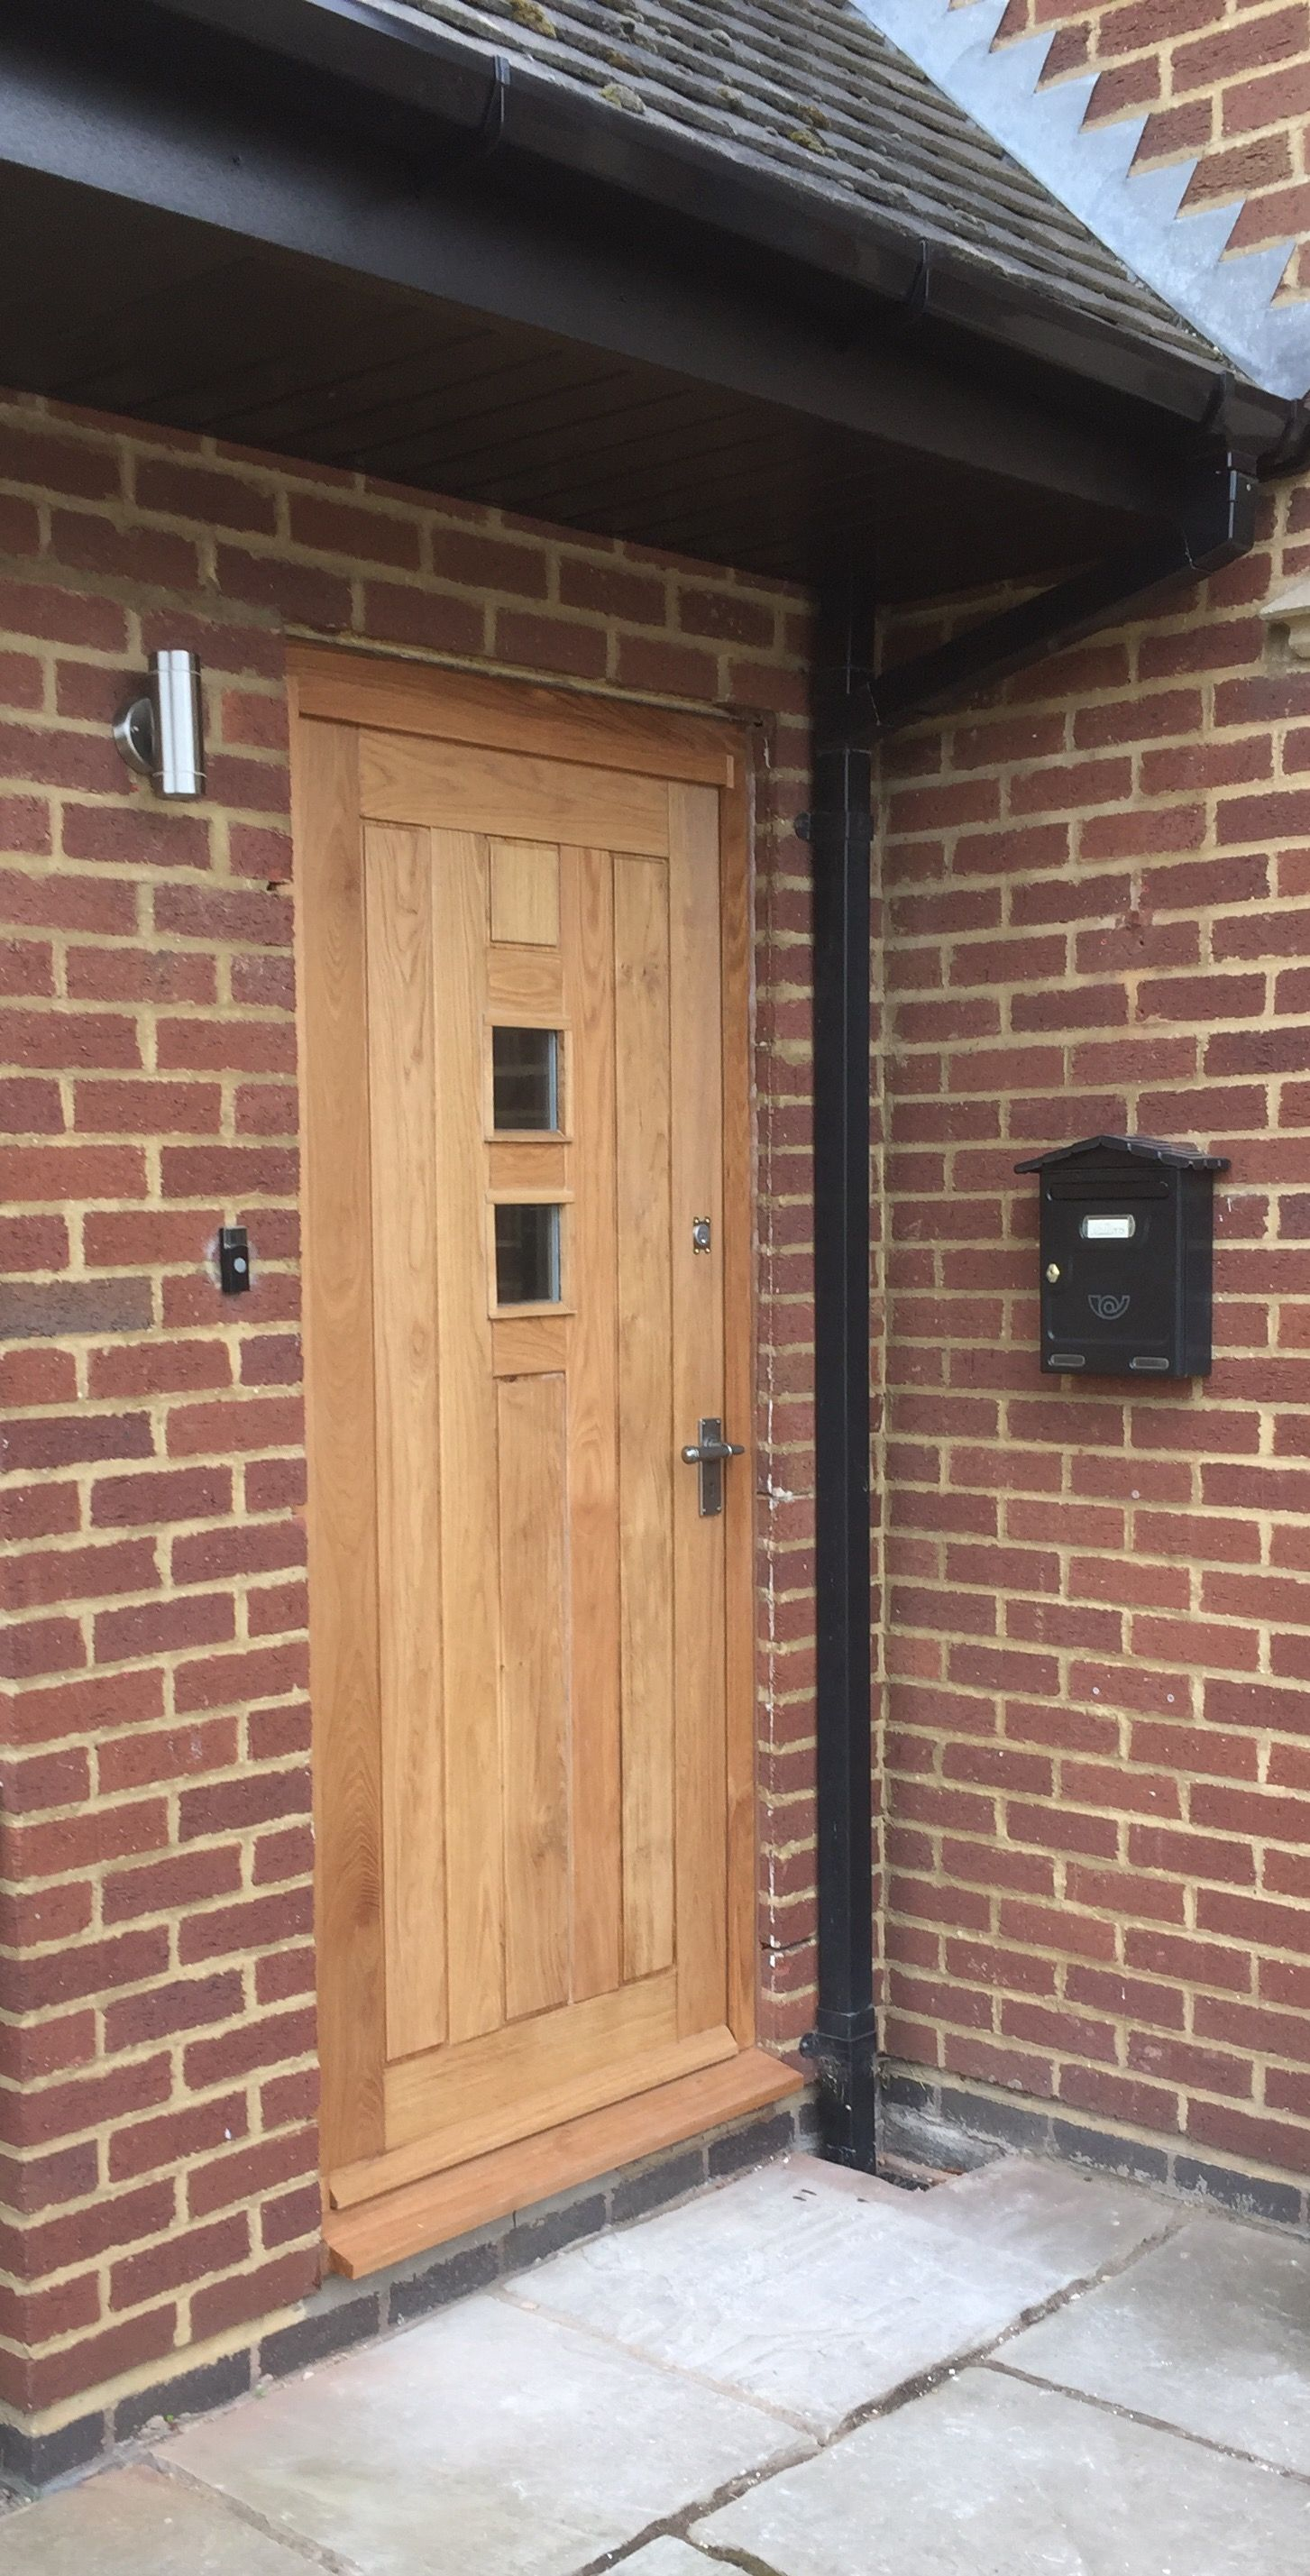 Solid Oak External Door And Door Frame With 2 Glass Windows